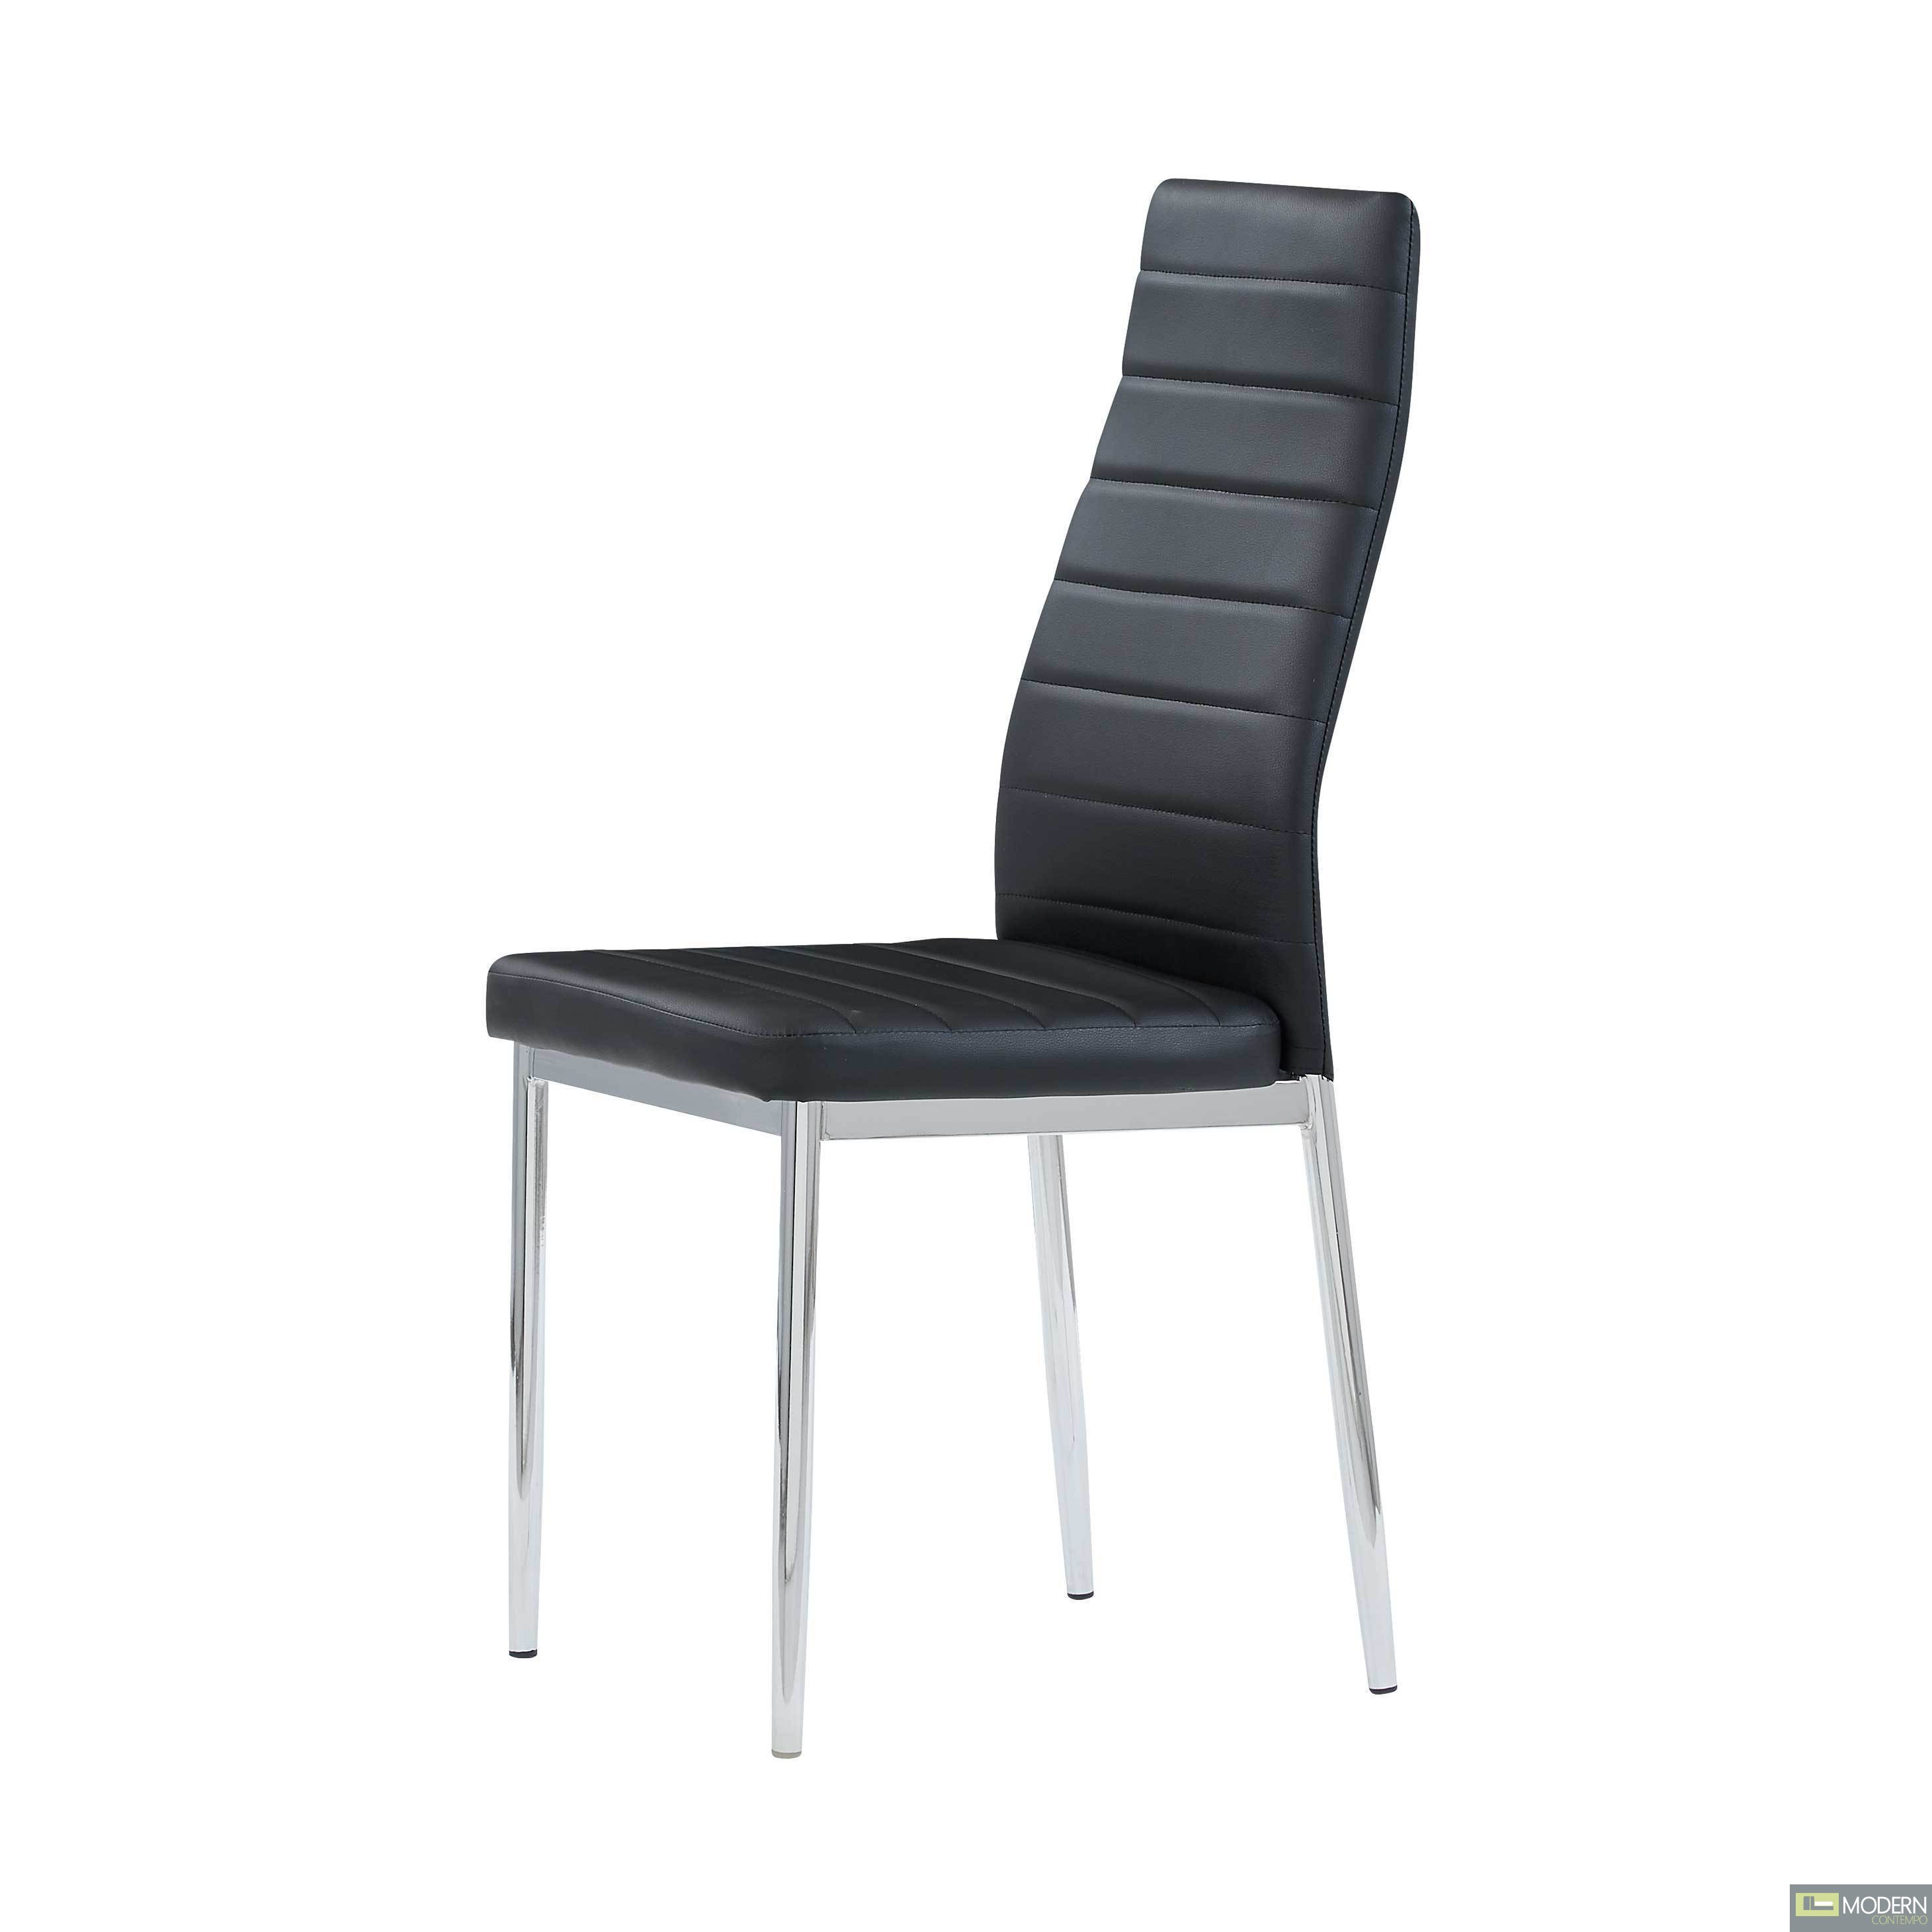 Set of 2 Black Leatherette Dining Chairs